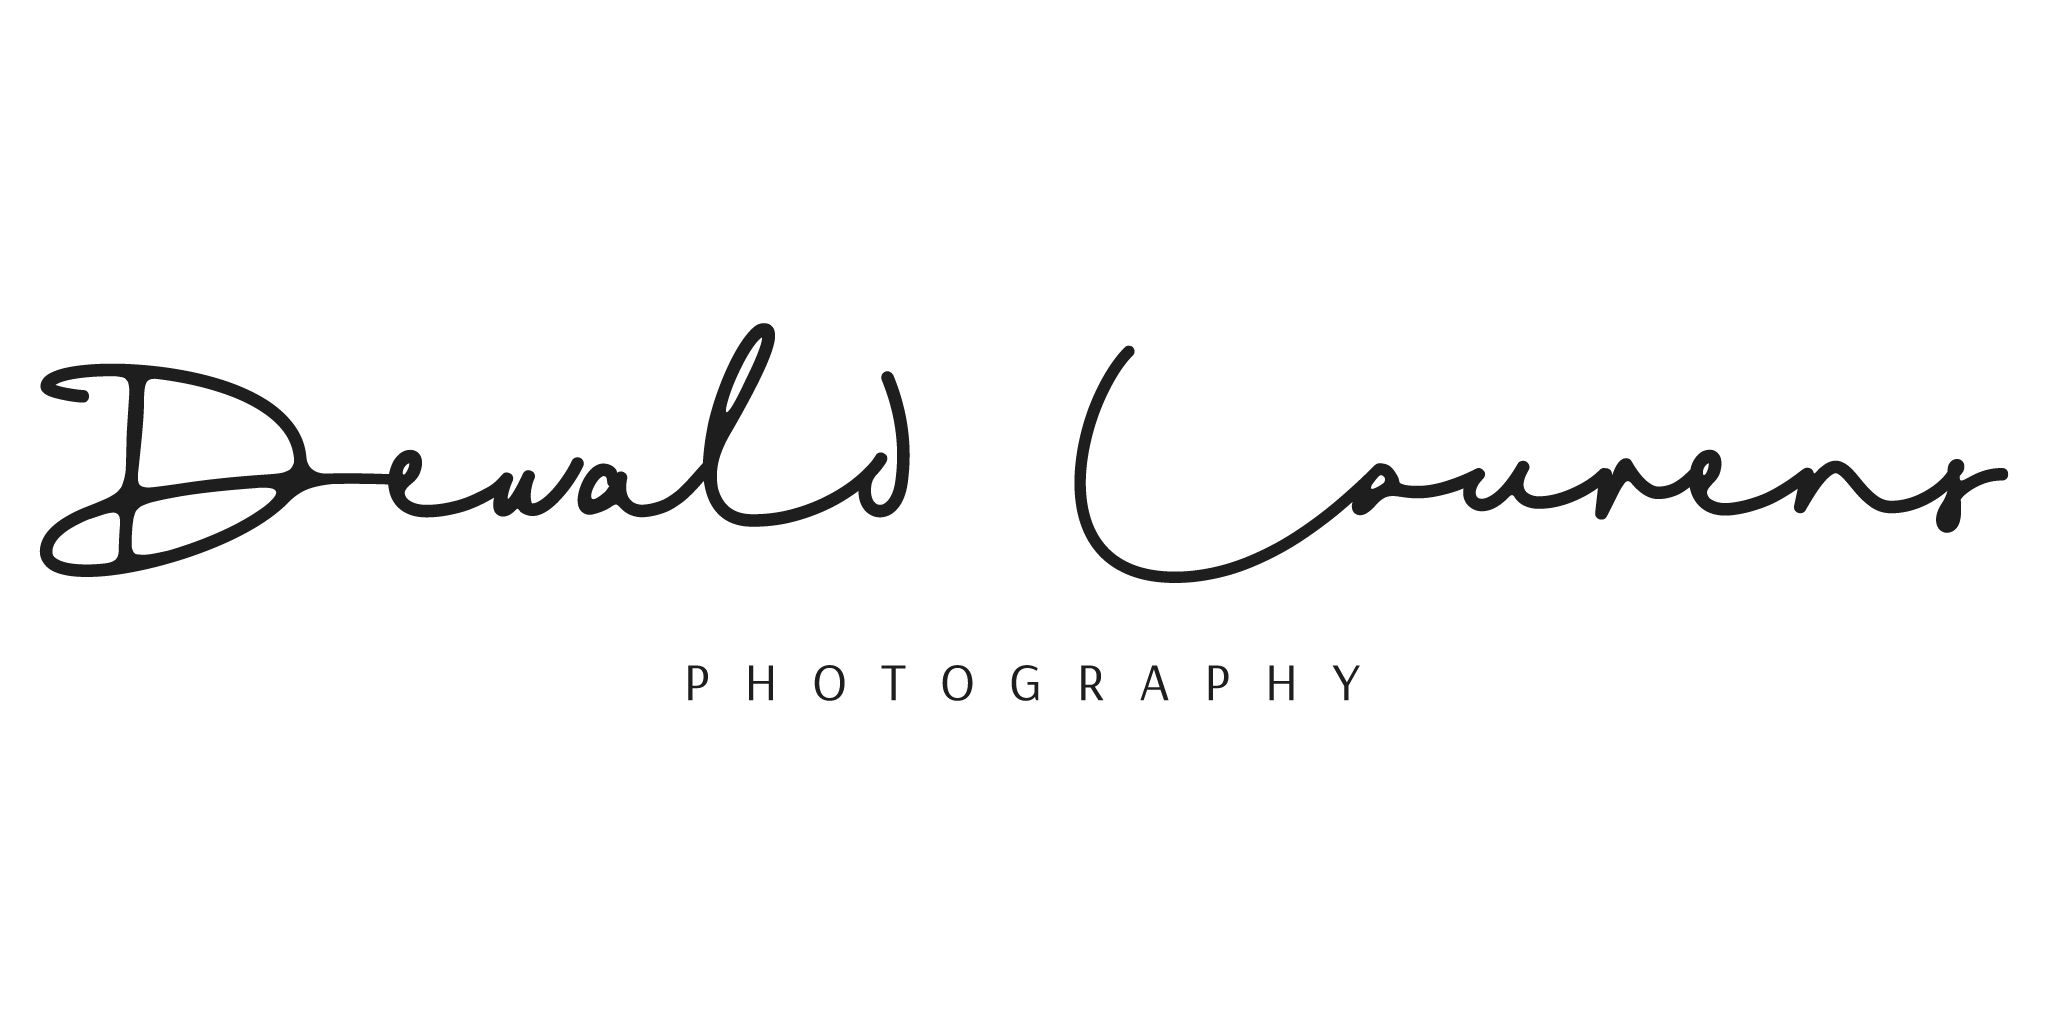 Dewald Lourens Photography